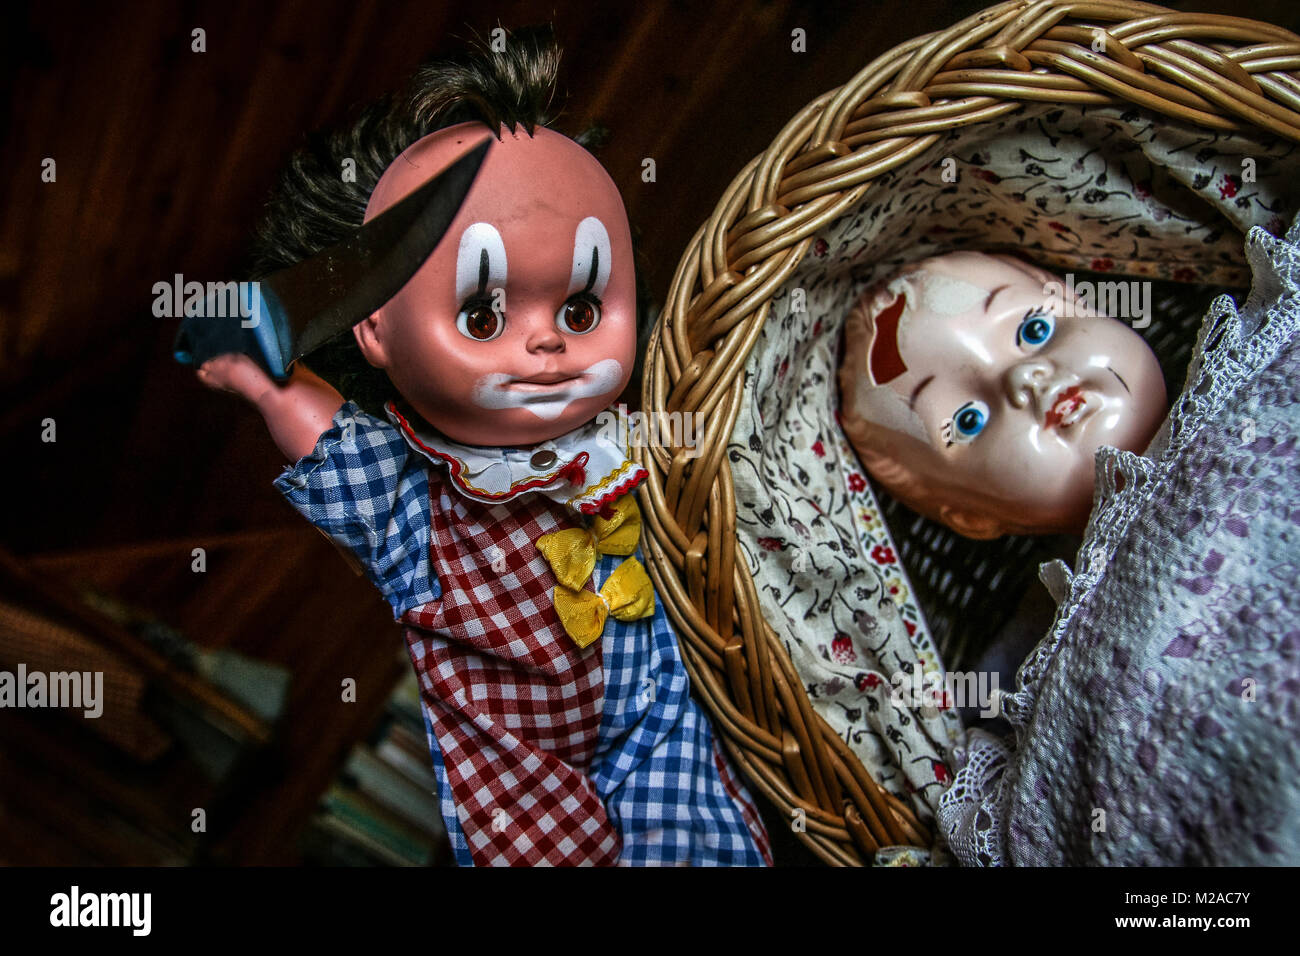 The unused old doll with a hole in its head is lying in the baby carriage and looking quite scary and depressive. - Stock Image